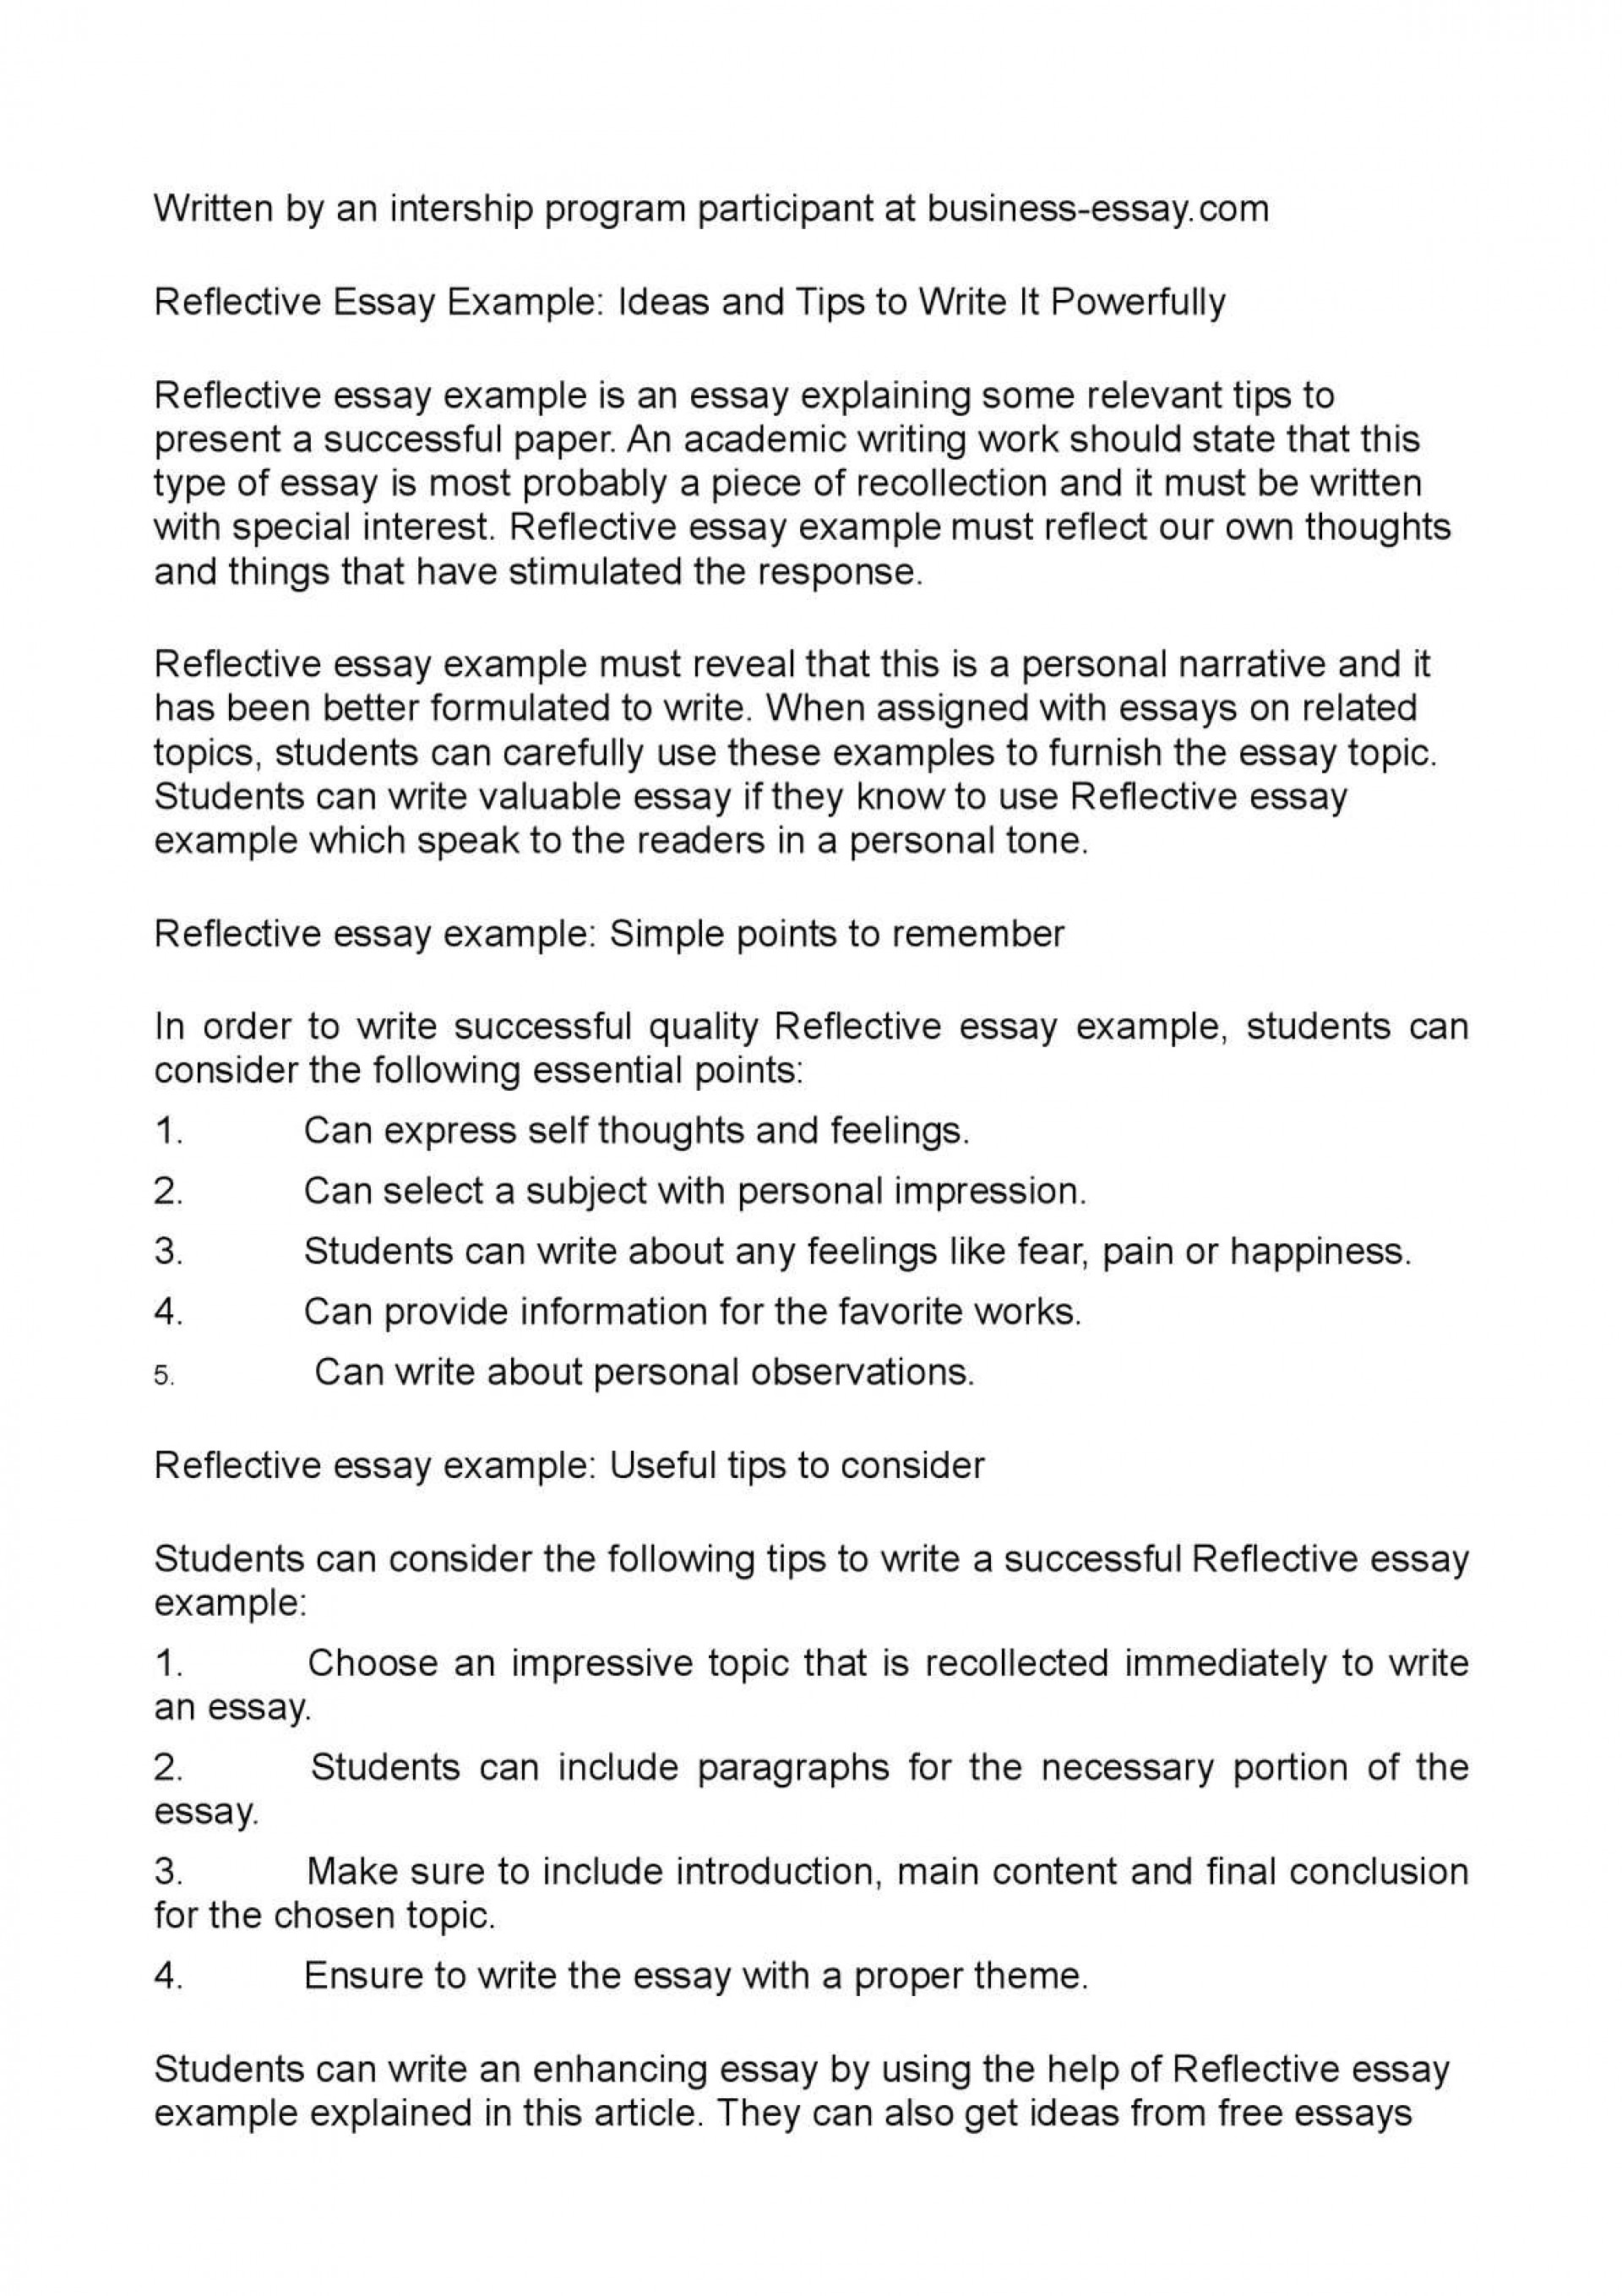 017 Reflective Essay Examples Example Beautiful English Pdf For Middle School On Writing Class 1920